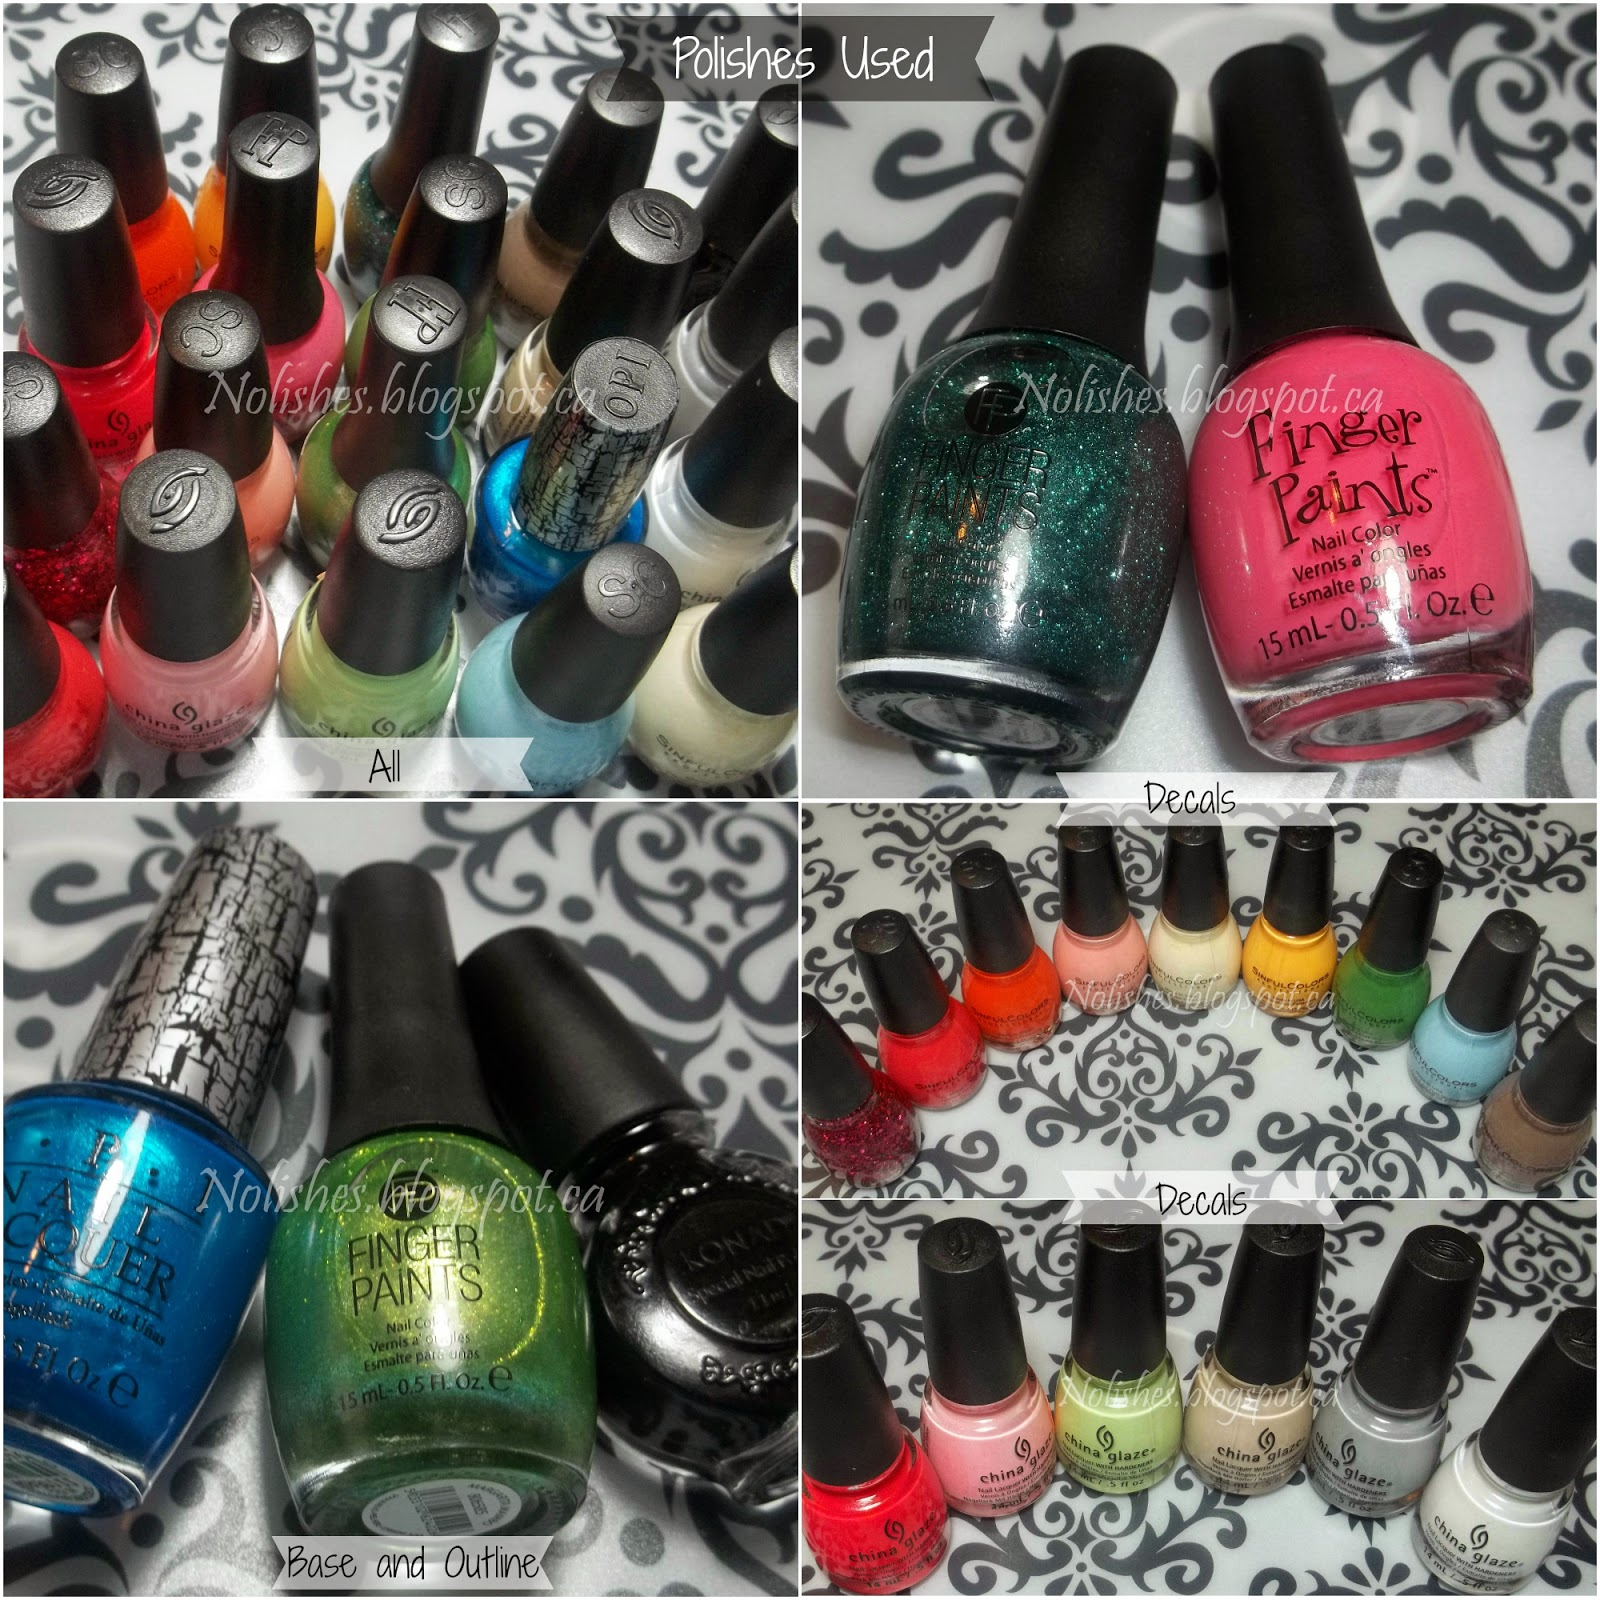 All 20 Polishes Used for the Crazy Decal Mani: Sinful Colors 'On the Bright Side', Sinful Colors 'Nirvana', Sinful Colors 'Daisy Daze', Sinful Colors 'Cream Soda', Sinful Colors 'Decadent', Sinful Colors 'Energetic Red', Sinful Colors 'Cinderella', Sinful Colors 'Citrine', Sinful Colors 'Exotic Green', China Glaze 'Feel the Breeze', China Glaze 'Be More Pacific', China Glaze 'White on White', China Glaze 'Pelican Gray', China Glaze 'Don't Honk Your Thorn', China Glaze 'Feel the Breeze', China Glaze 'Rose Among Thorns, Finger Paints 'Louvre This Pink', Finger Paints 'Art You Wondering', Finger Paints 'Margarita Mambo', and OPI 'Turquoise Shatter'